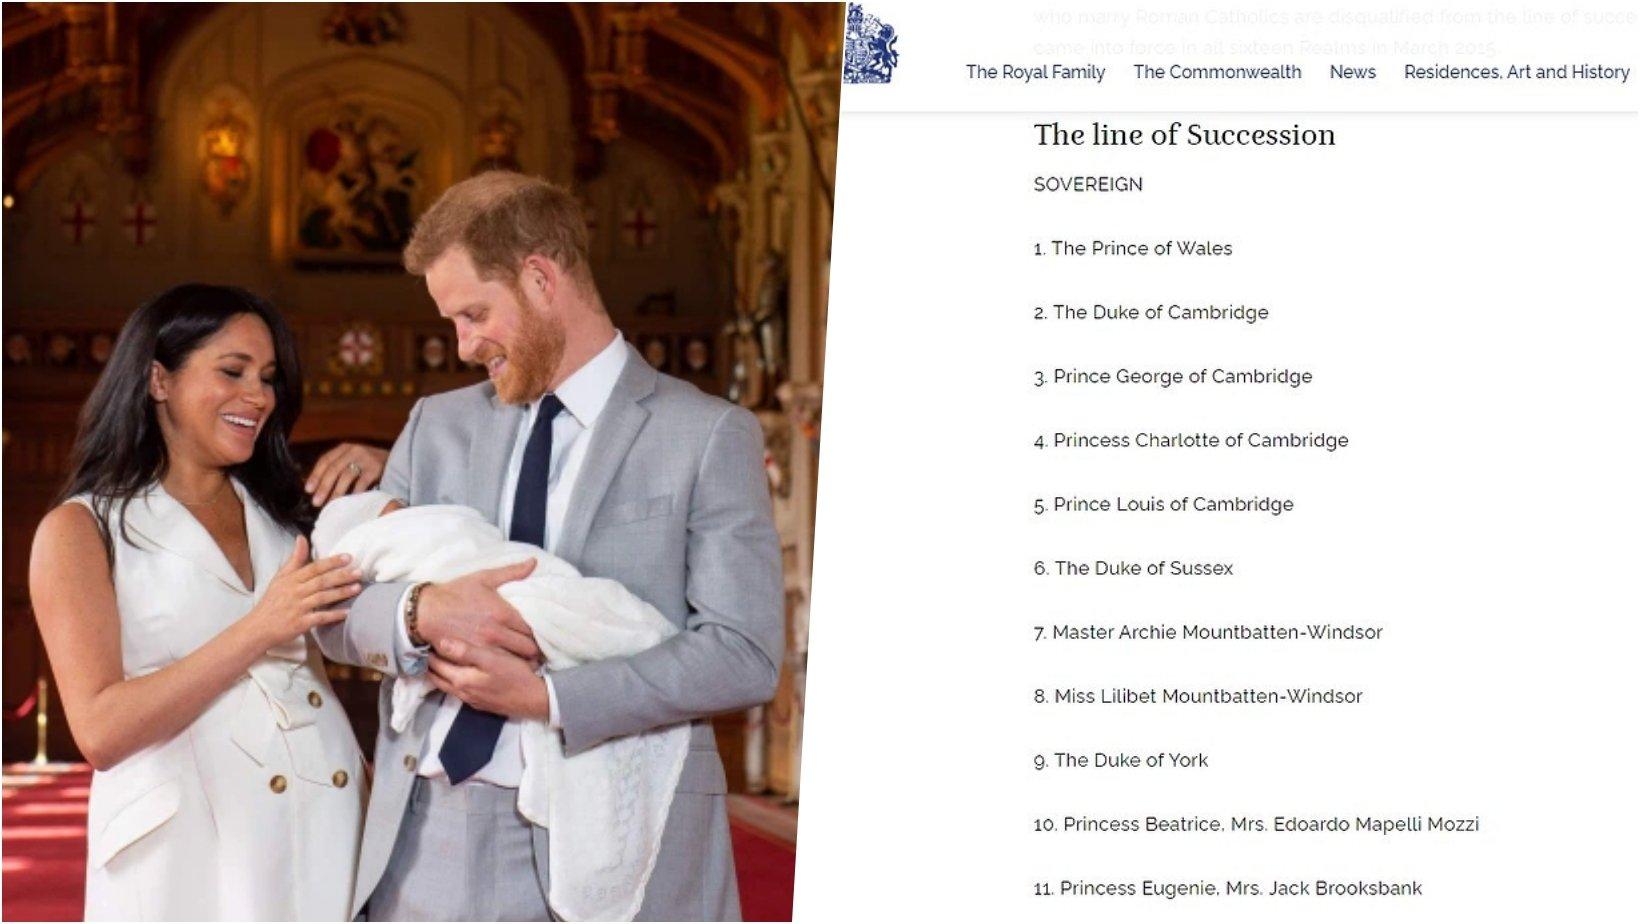 6 facebook cover 26.jpg?resize=412,275 - Lilibet Diana Is FINALLY Listed On The Royal Family's Line Of Succession, Seven Weeks After Her Birth